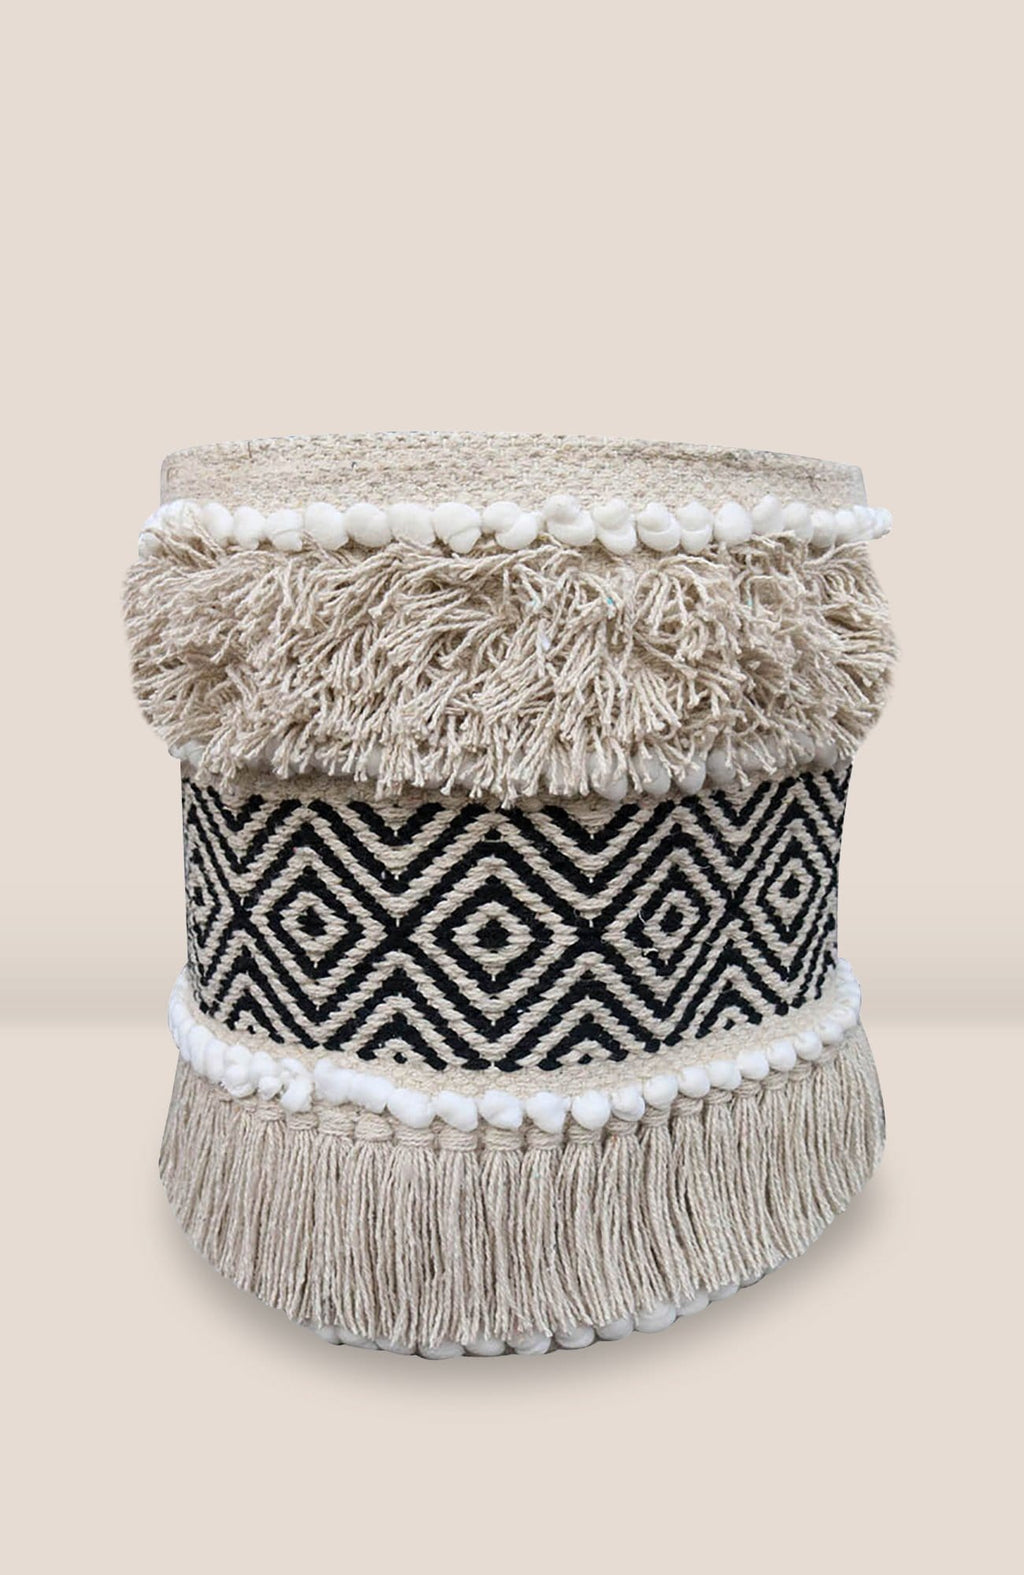 Woven Basket Bell - Home Decor | Shop Baskets, Ceramics, Pillows, Rugs & Wall Hangs online